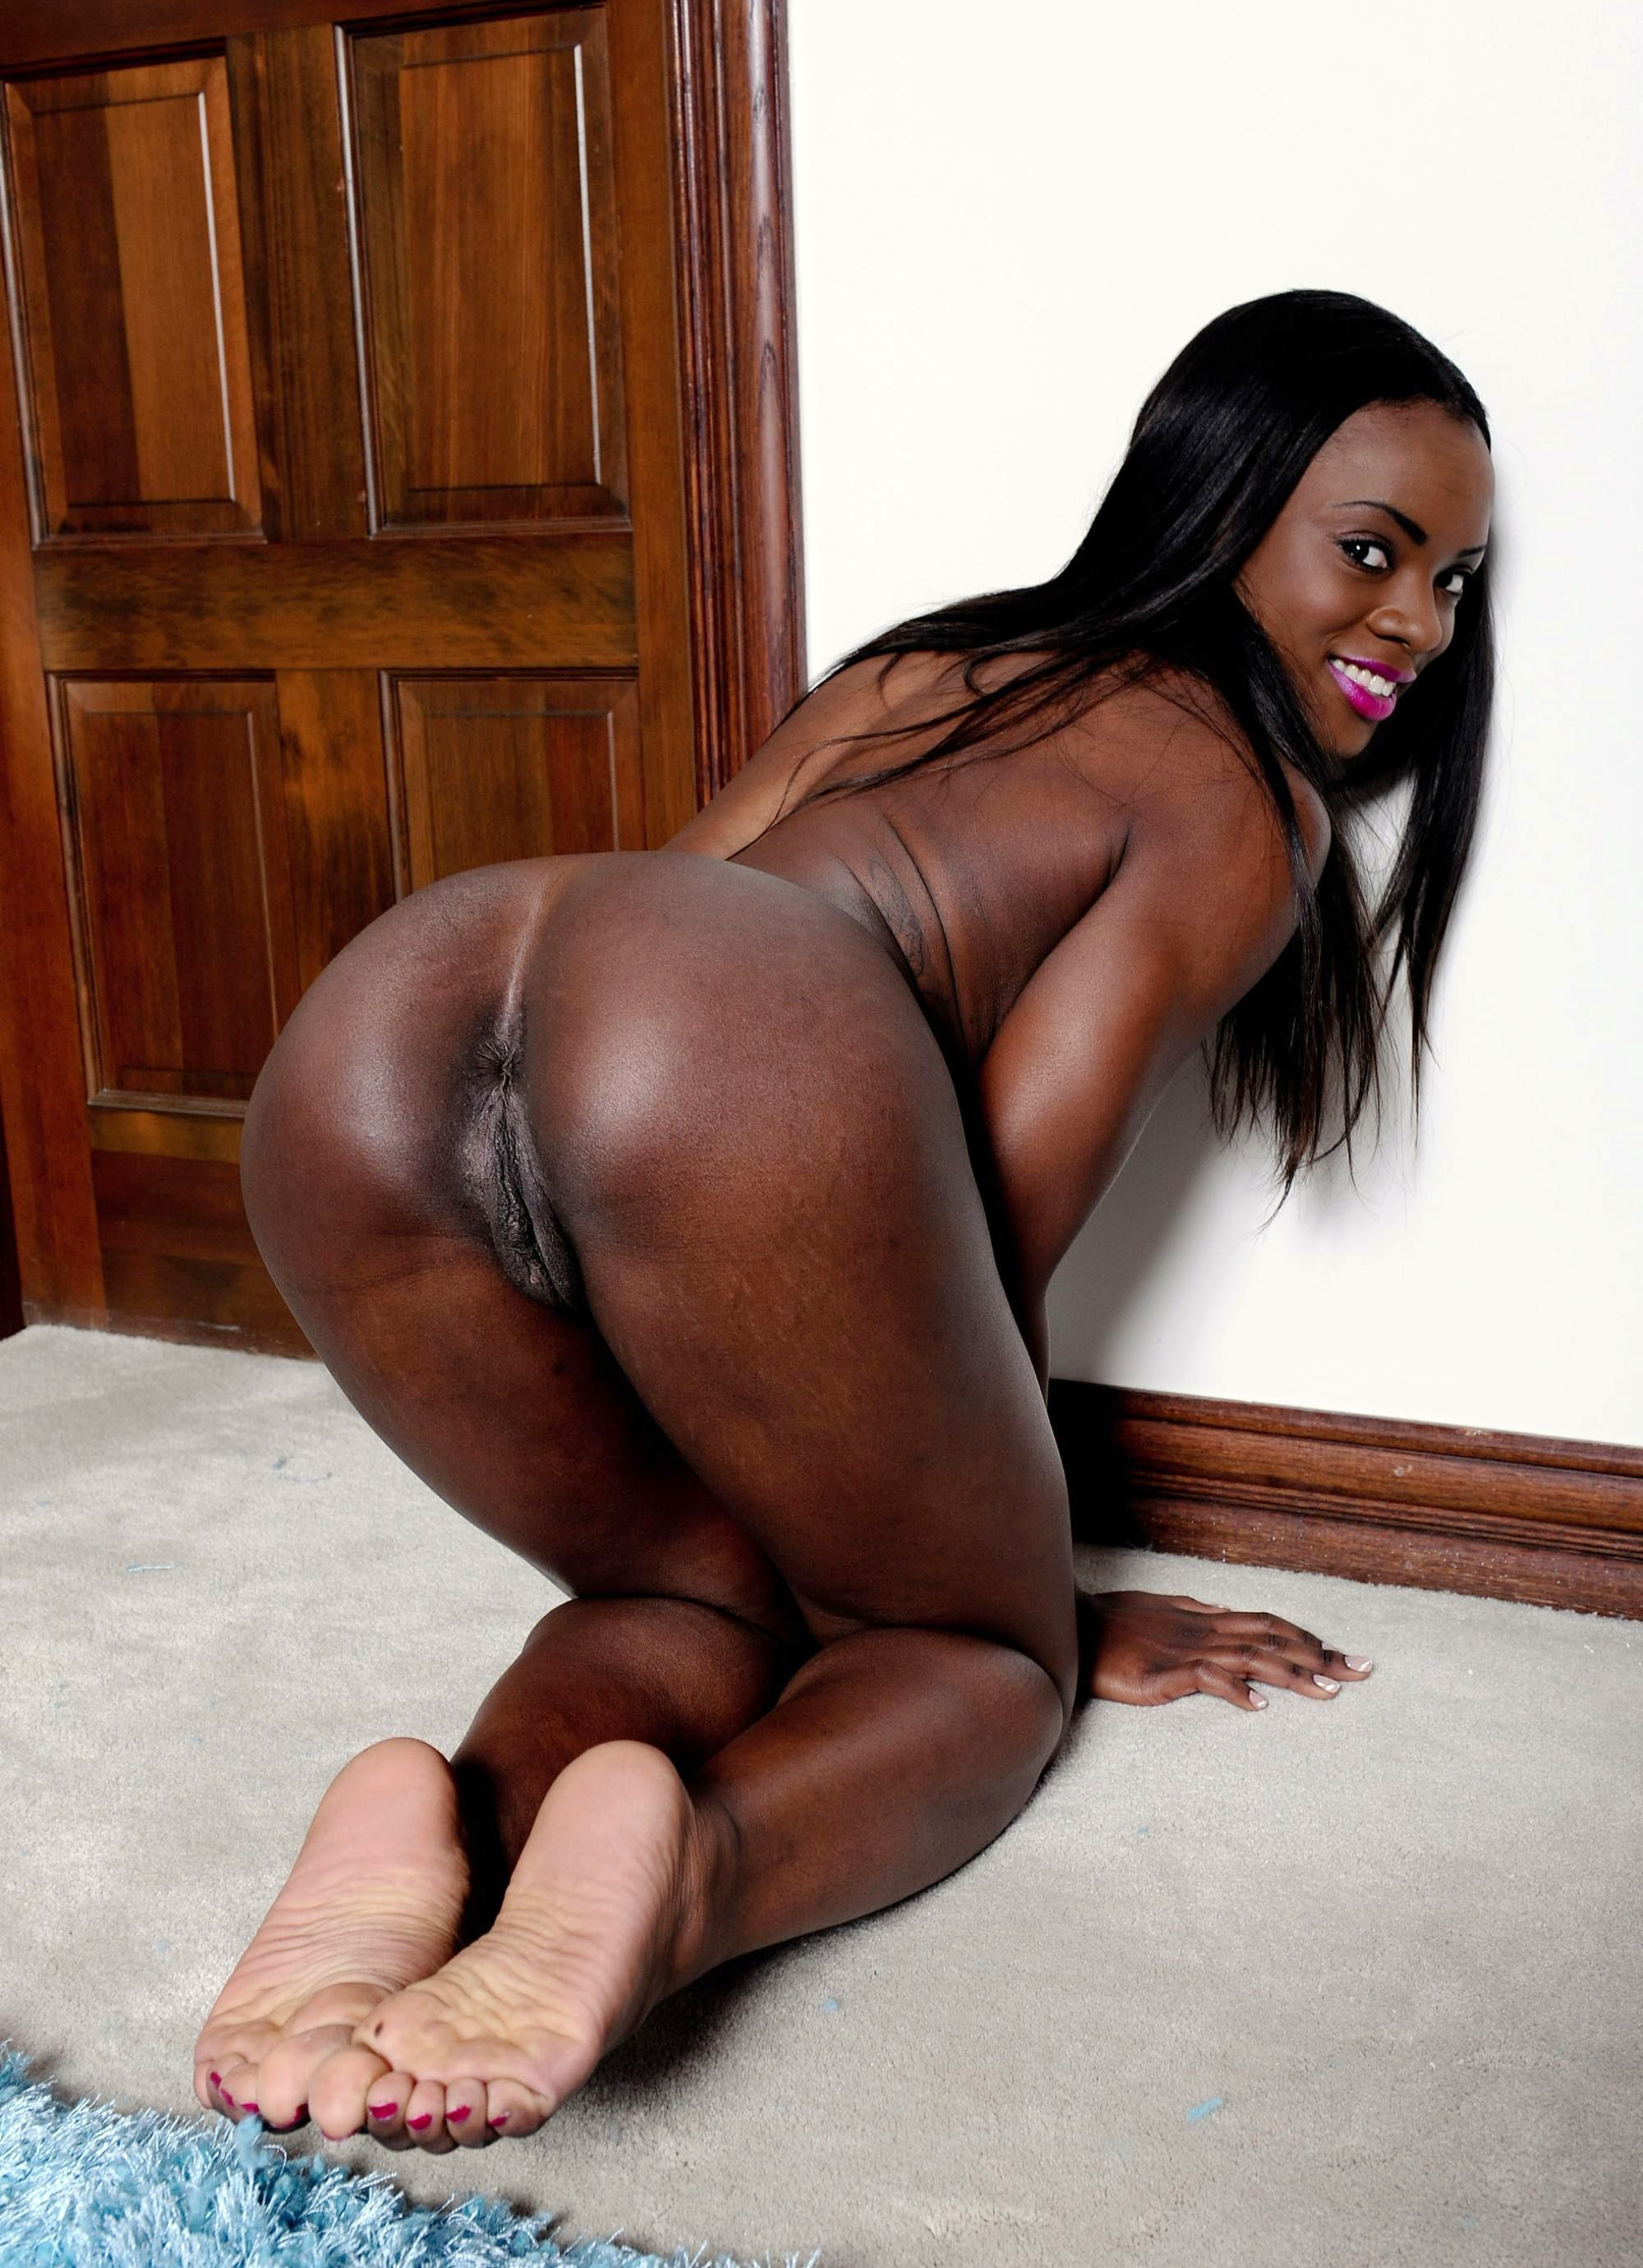 black chicks in porn EbonyClipss.com is filled with ebony babes, black chicks & interracial porn.